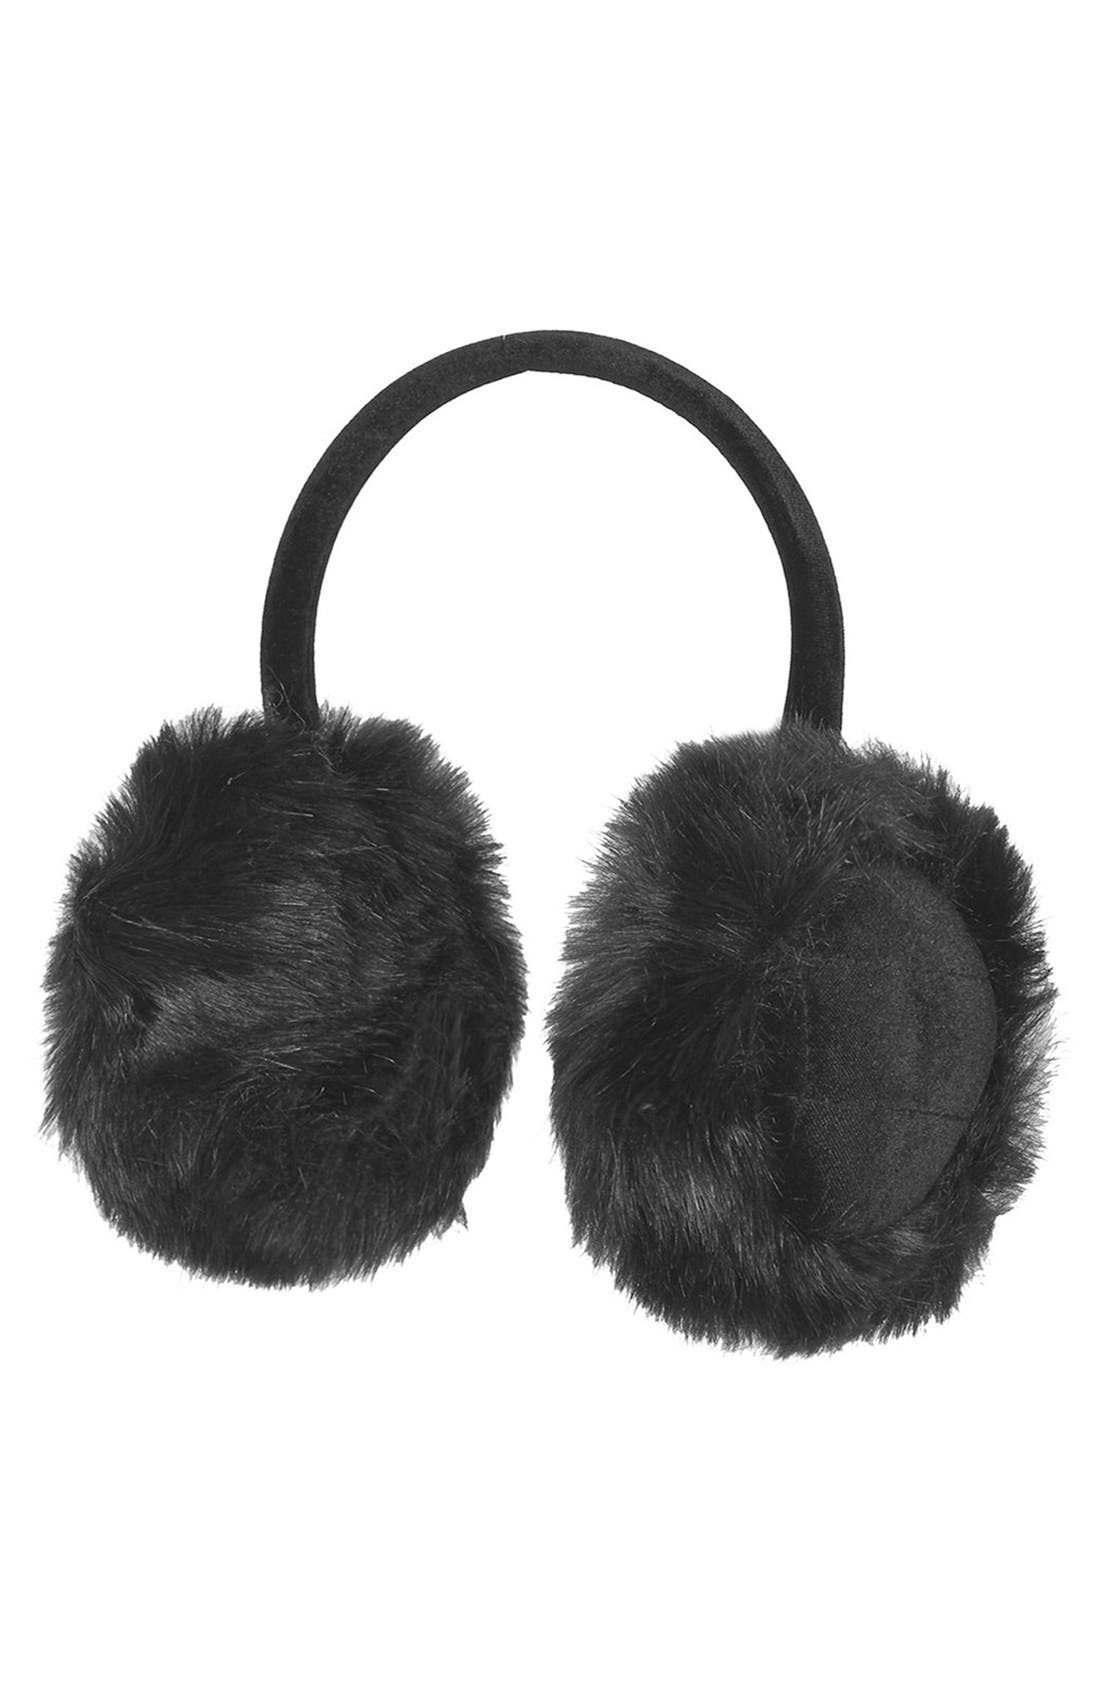 Alternate Image 1 Selected - Topshop 'Core' Faux Fur Earmuffs